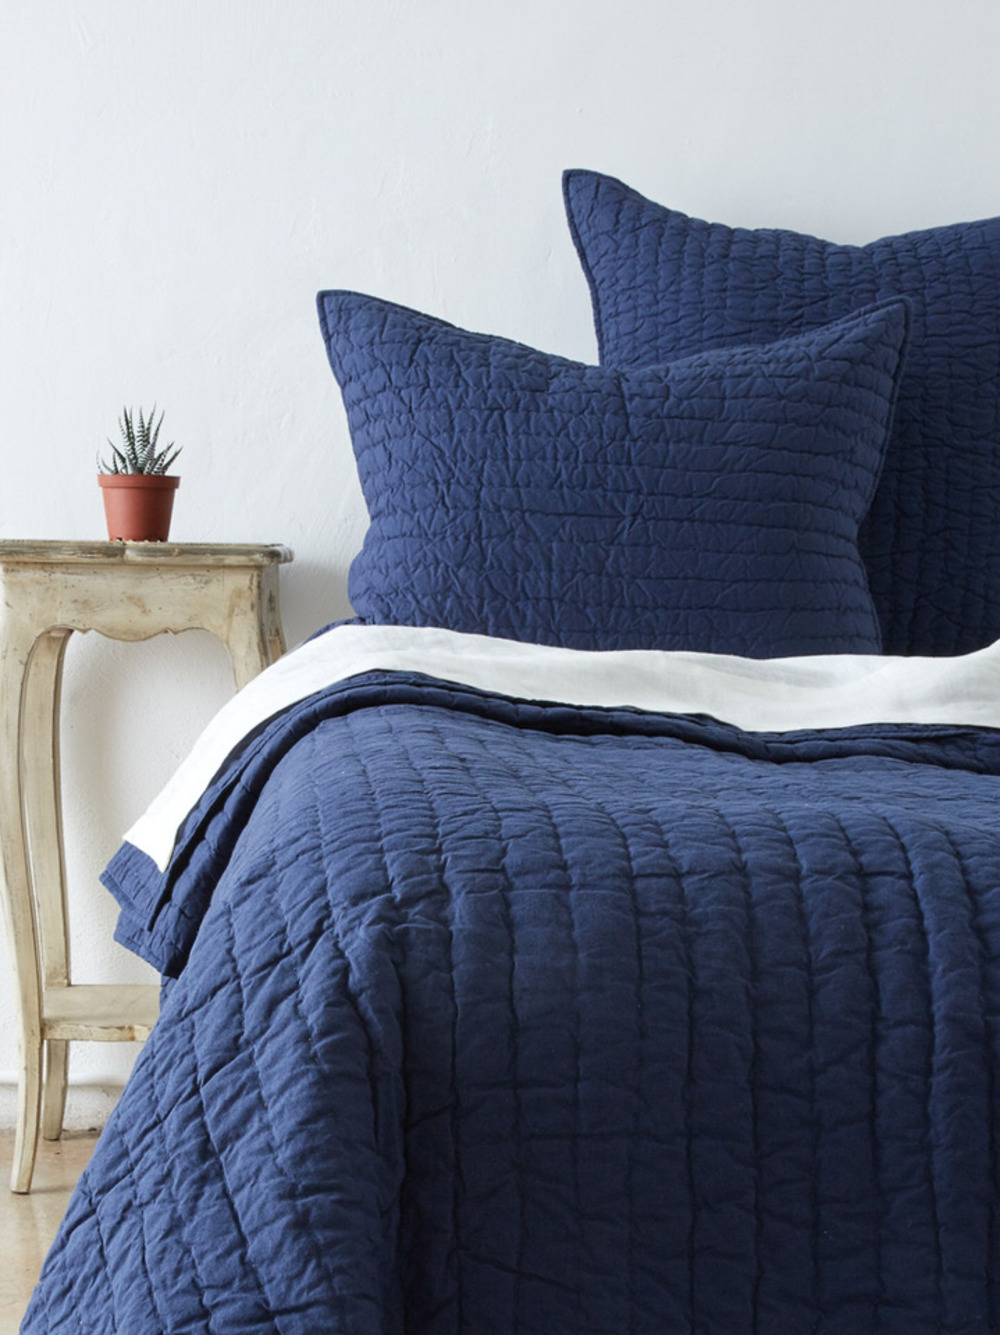 Amity Imports - Base Camp King Quilt in Navy